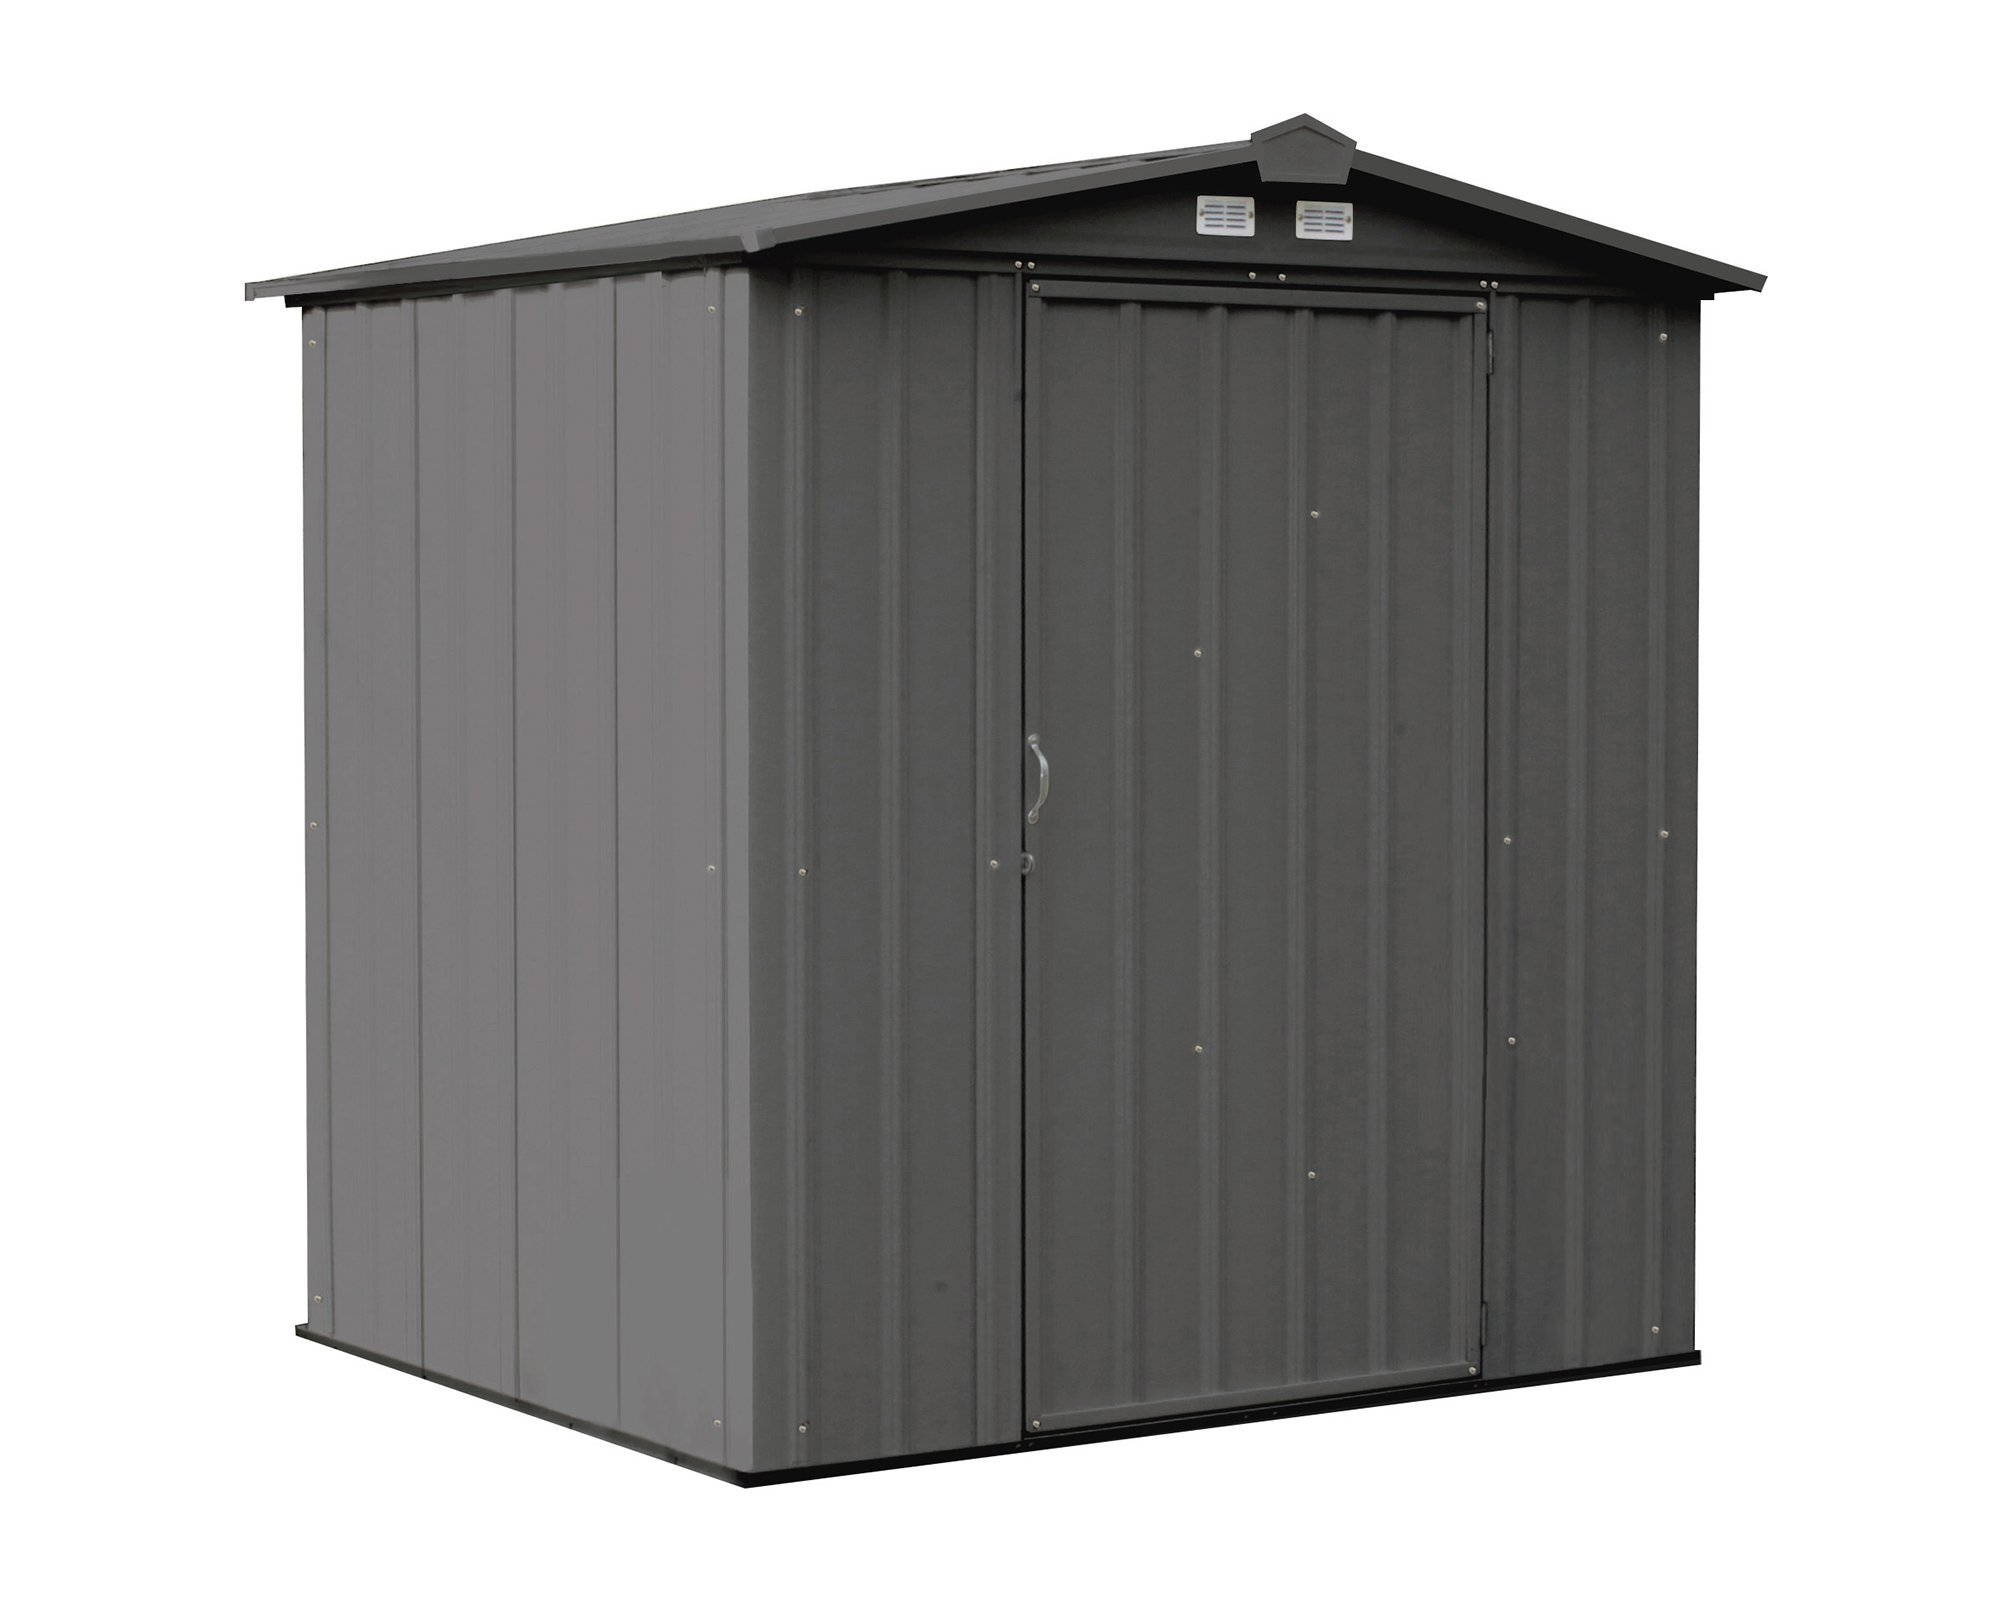 Get Quotations · Arrow EZEE Shed Low Gable Steel Storage Shed, Charcoal, 6  X 5 Ft.